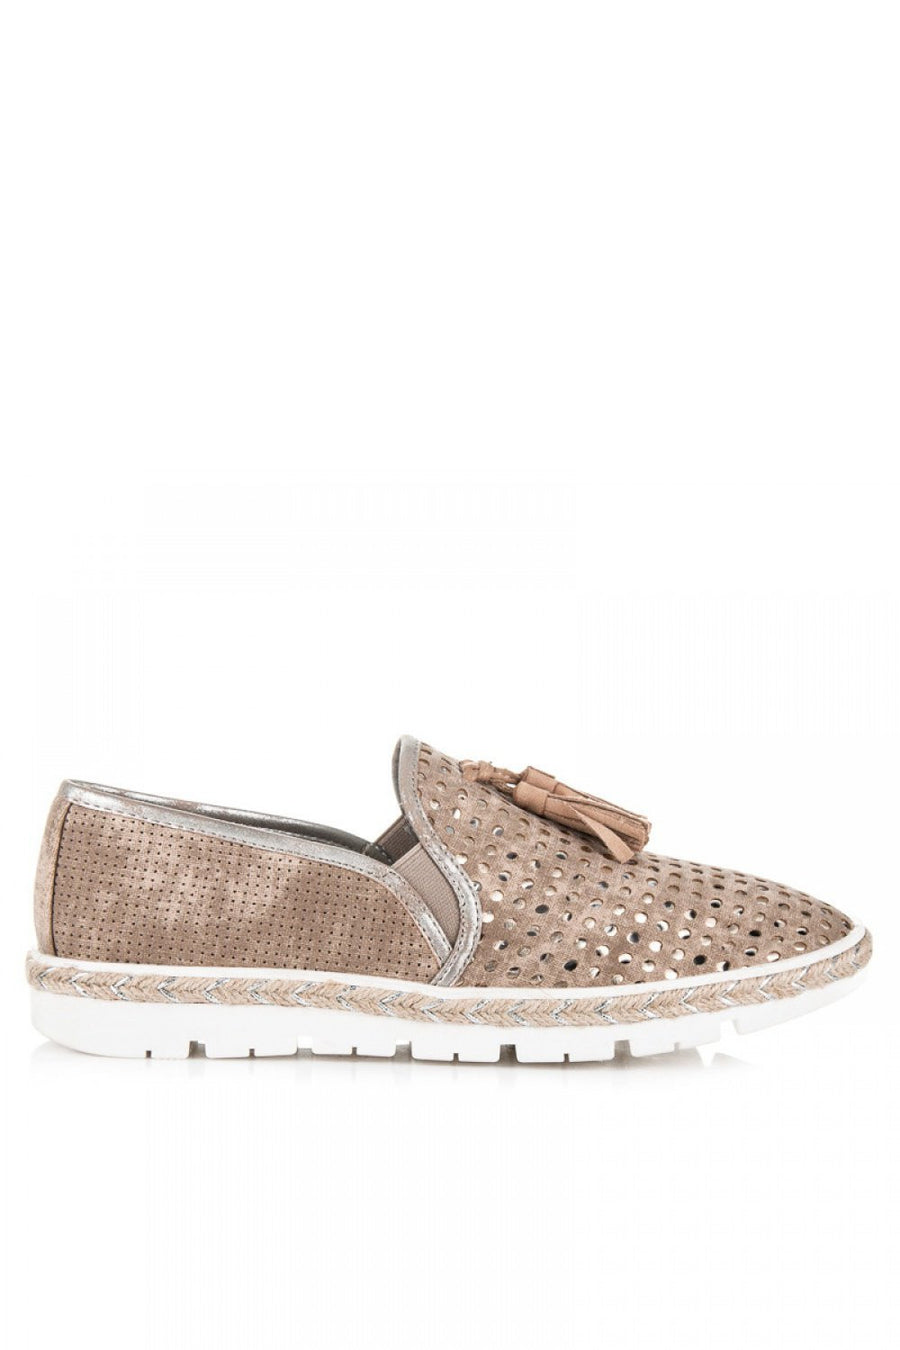 Espadrille 78524 Zoki-Women`s Athletic Shoes, Trainers, Sneakers-Zoki-Très Fancy